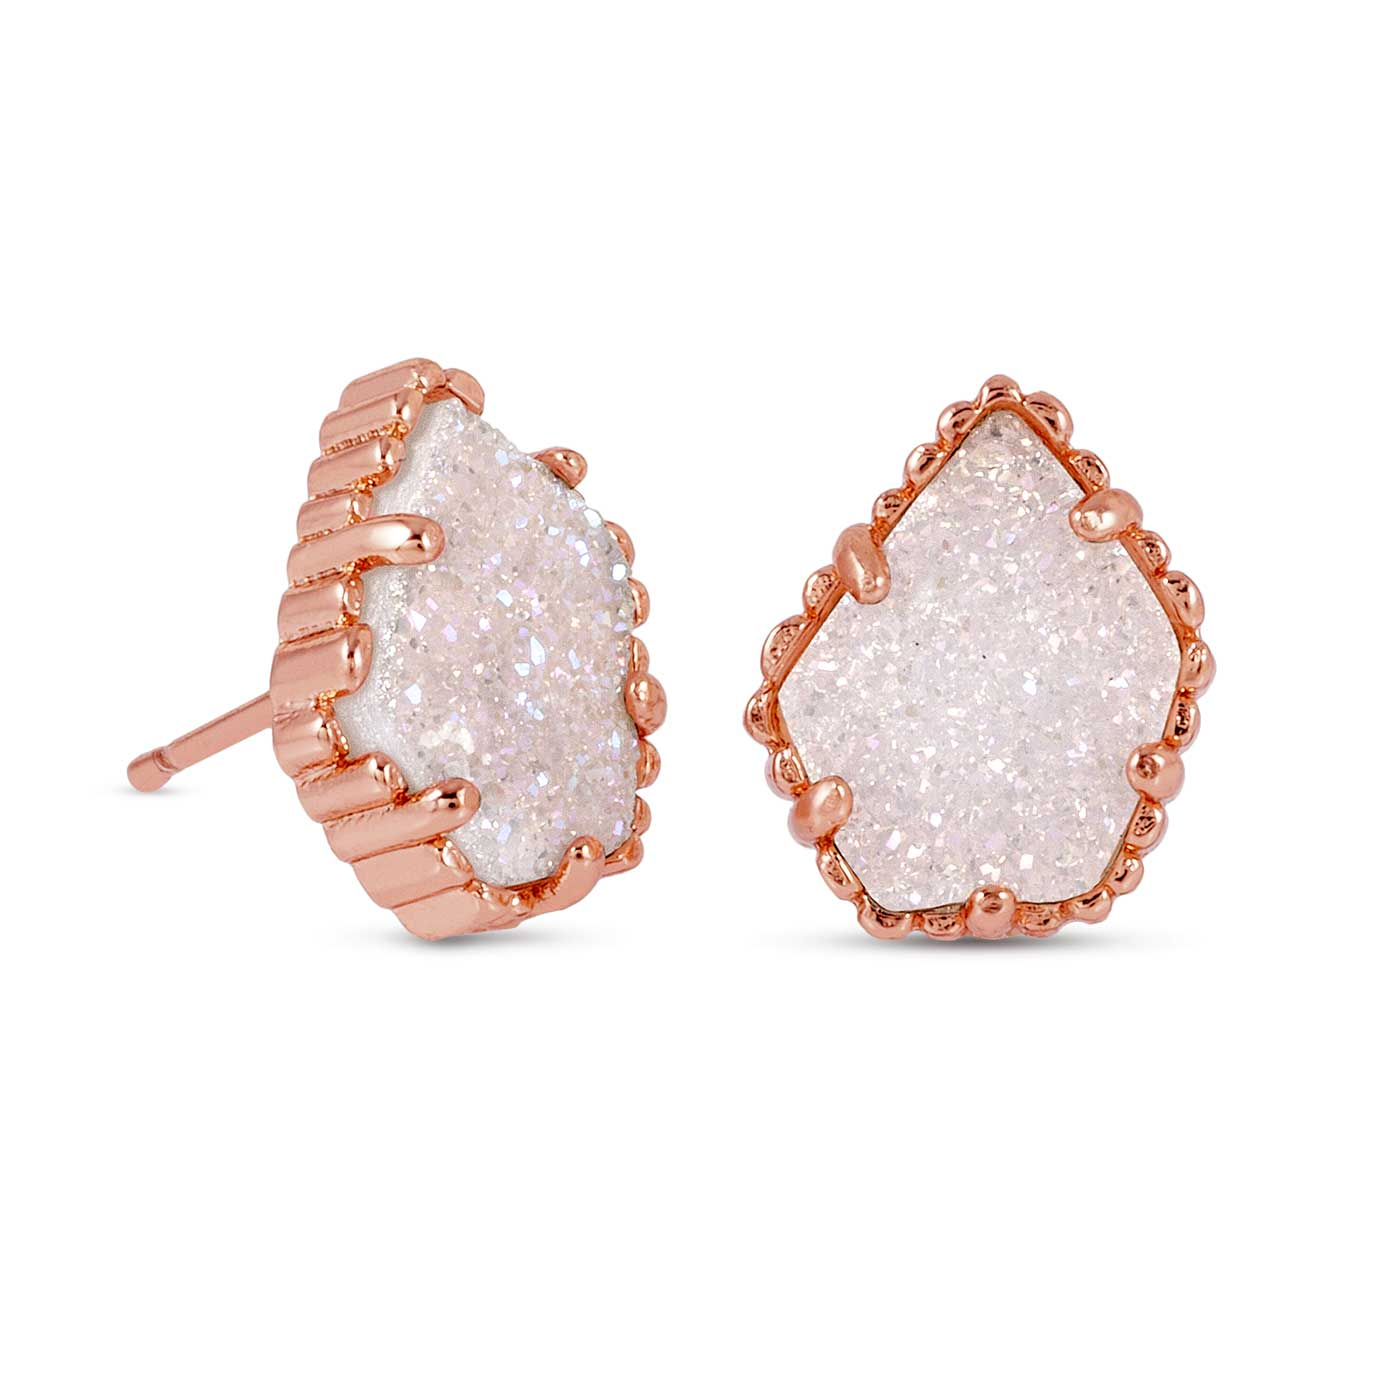 75d7b5386 Kendra Scott Tessa Rose Gold Stud Earrings in Iridescent Drusy: Precious  Accents, Ltd.